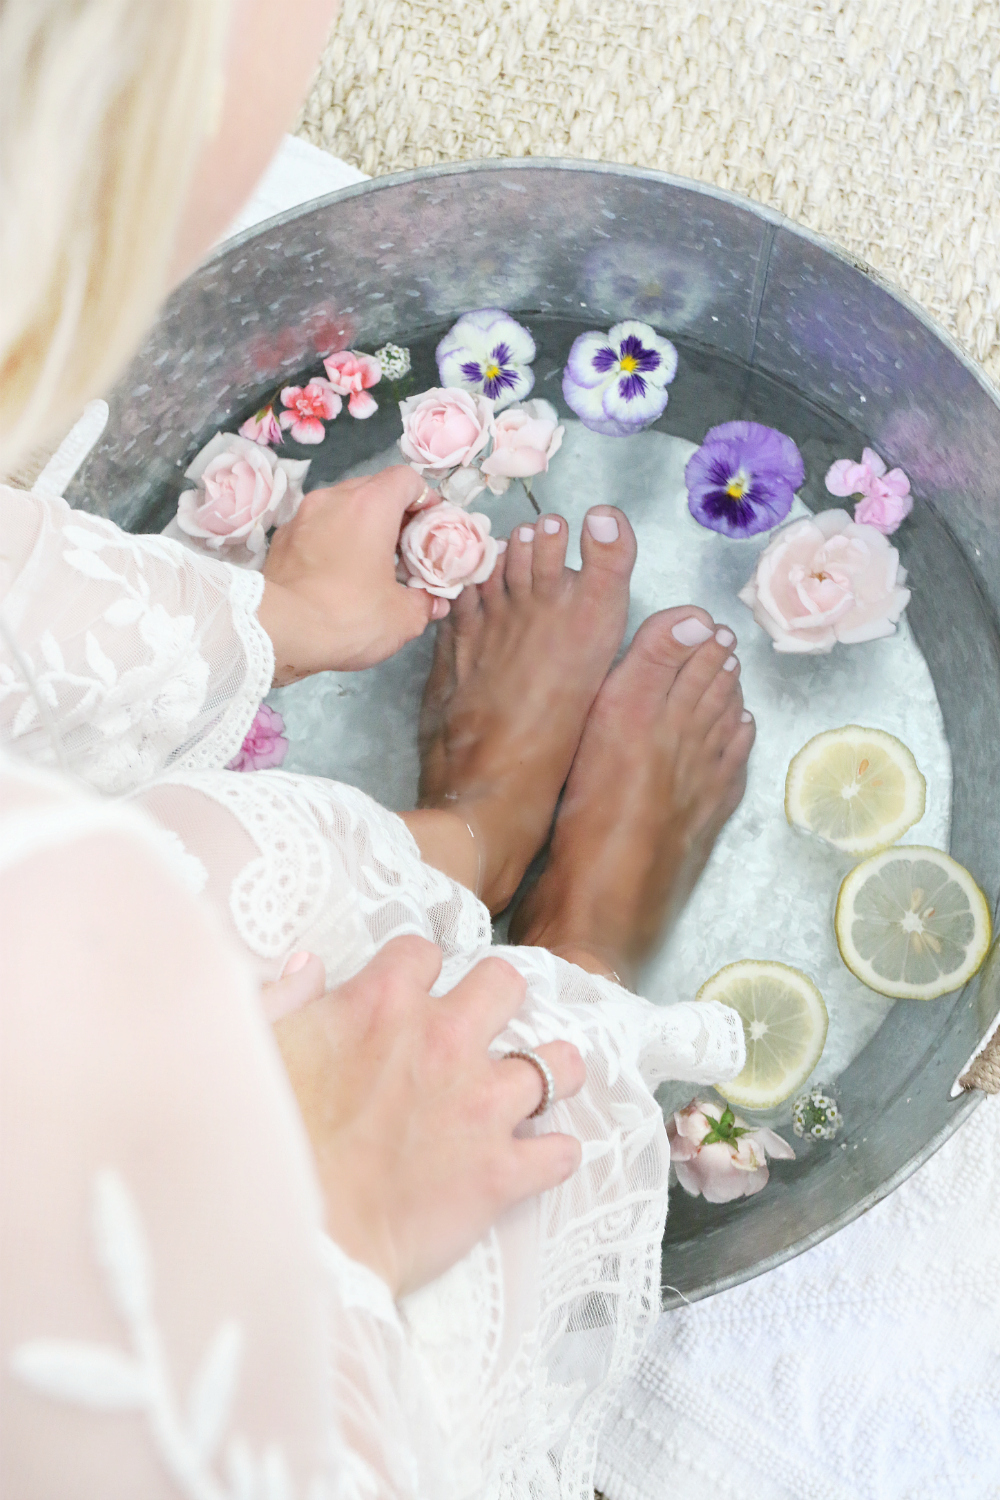 Home Flower Pedicure